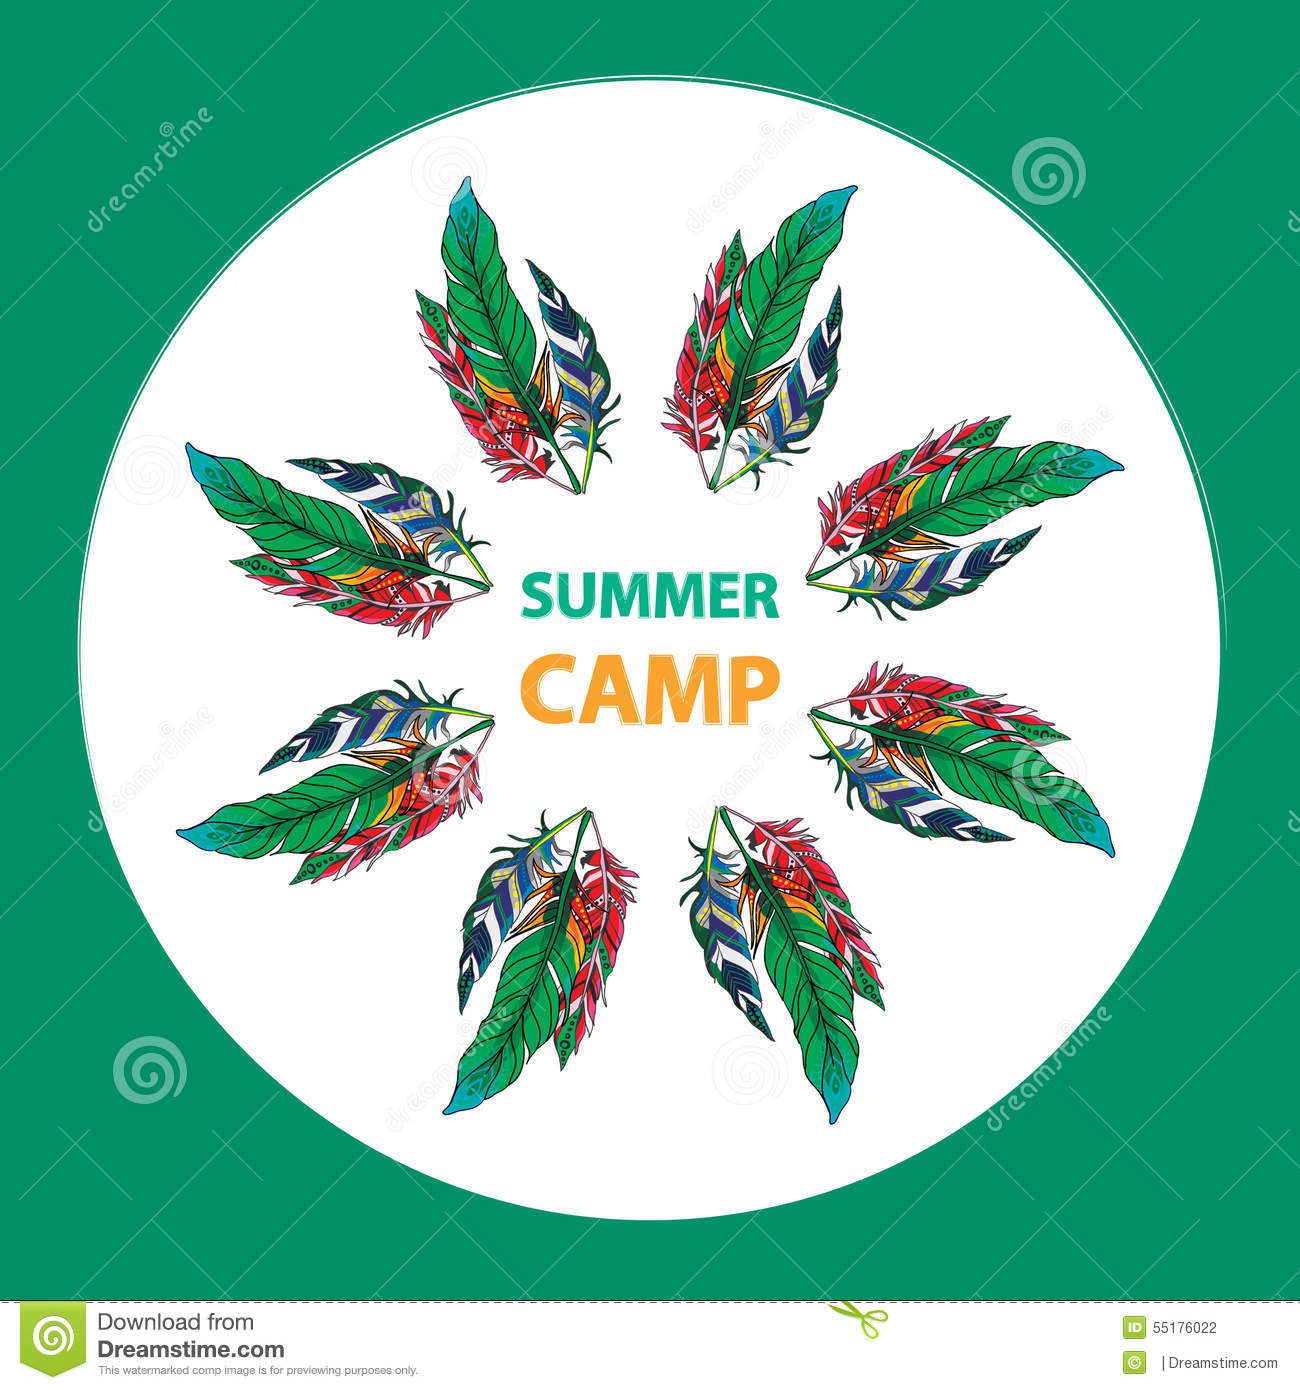 Summer Camp Design Stock Vector Image 55176022